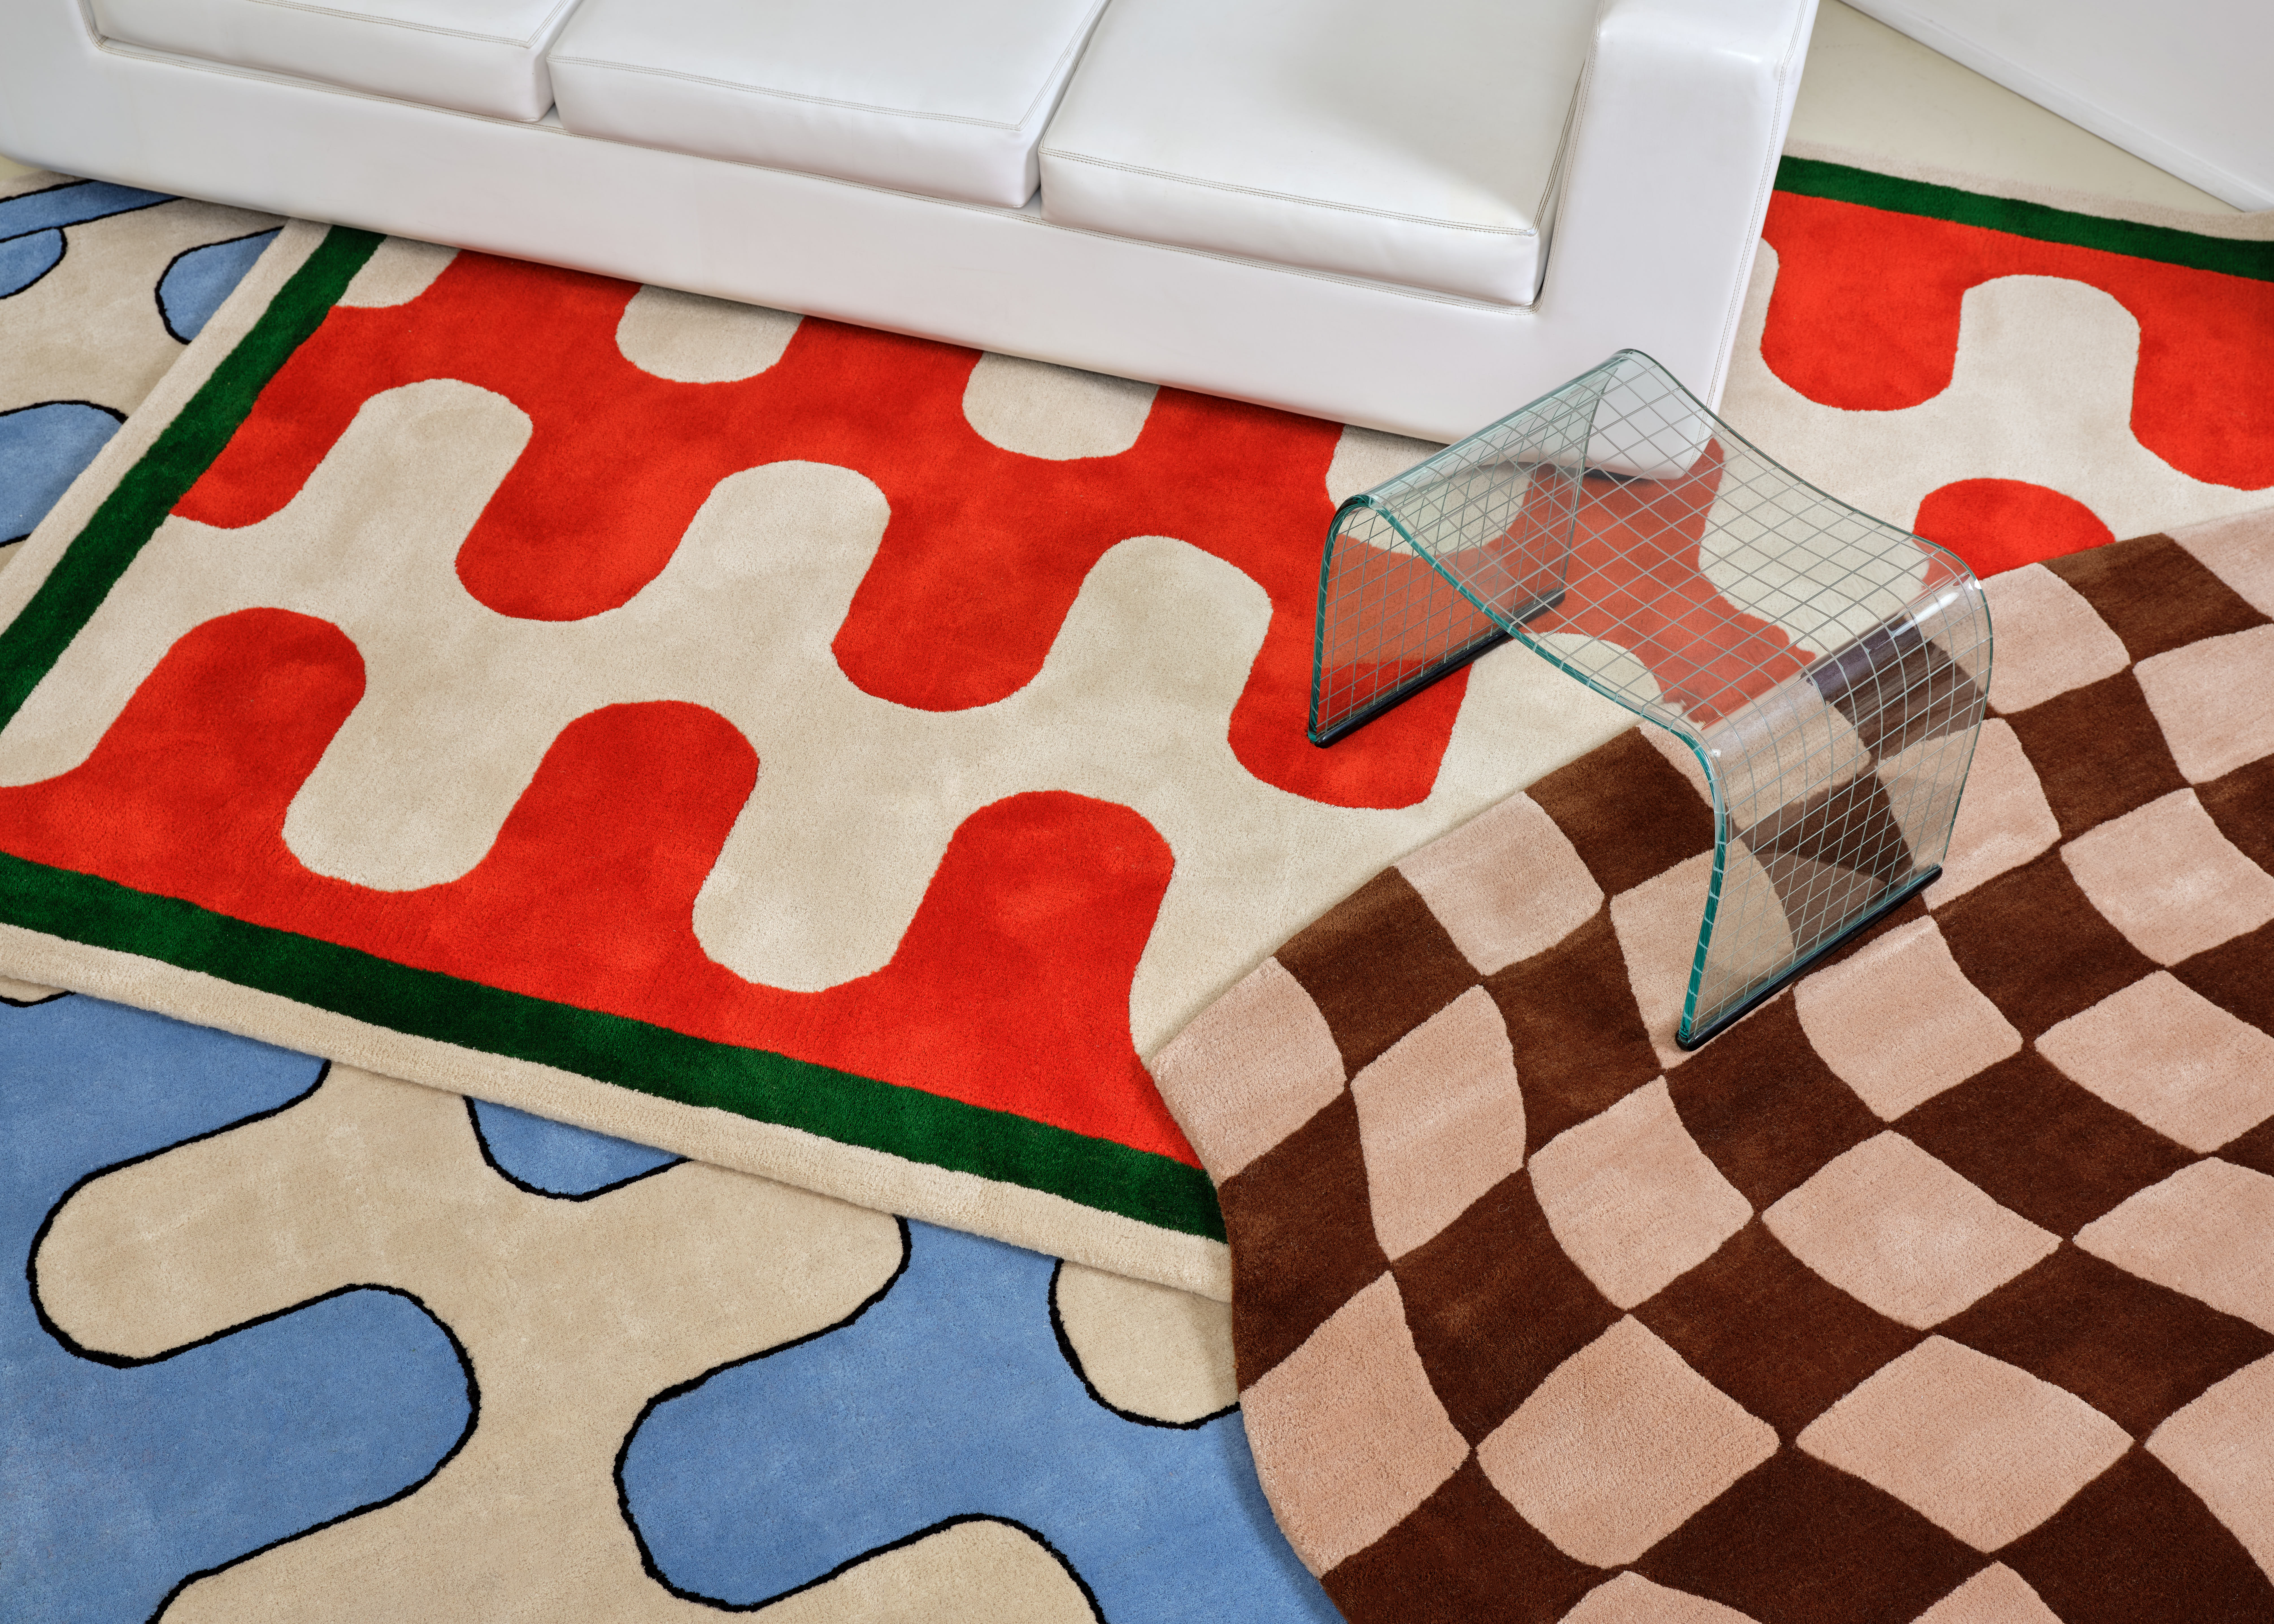 This Groovy Rug Collab Is Bringing '70s Design Back to Life